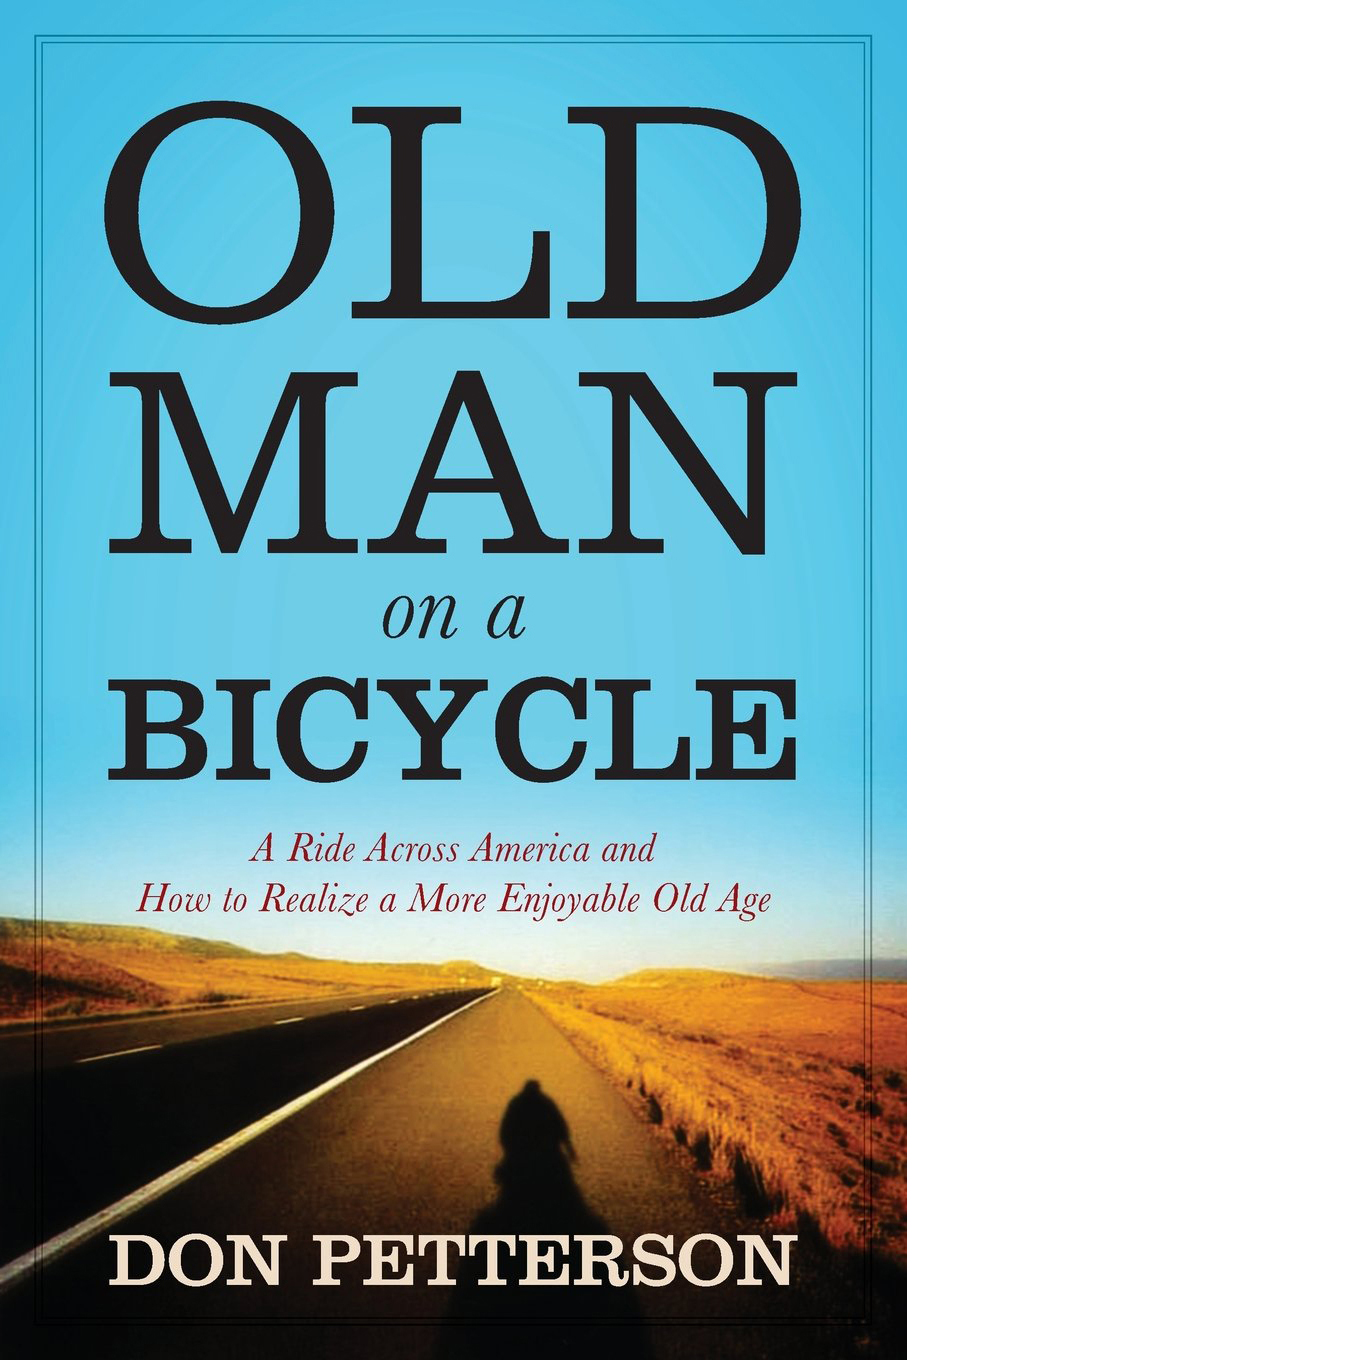 Old Man on a Bicycle: A Ride Across America and How to Realize a More Enjoyable Old Age  -   June 10, 2014  When Don Petterson, a former American ambassador, told family and friends he intended to ride a bicycle from New Hampshire to San Francisco, most of them questioned his judgment, if not his sanity. He was in his seventies, hadn't been on a bike for years, and had never ridden more than a few miles at a time.    $5.26 Kindle     |     $13.95 Paperback